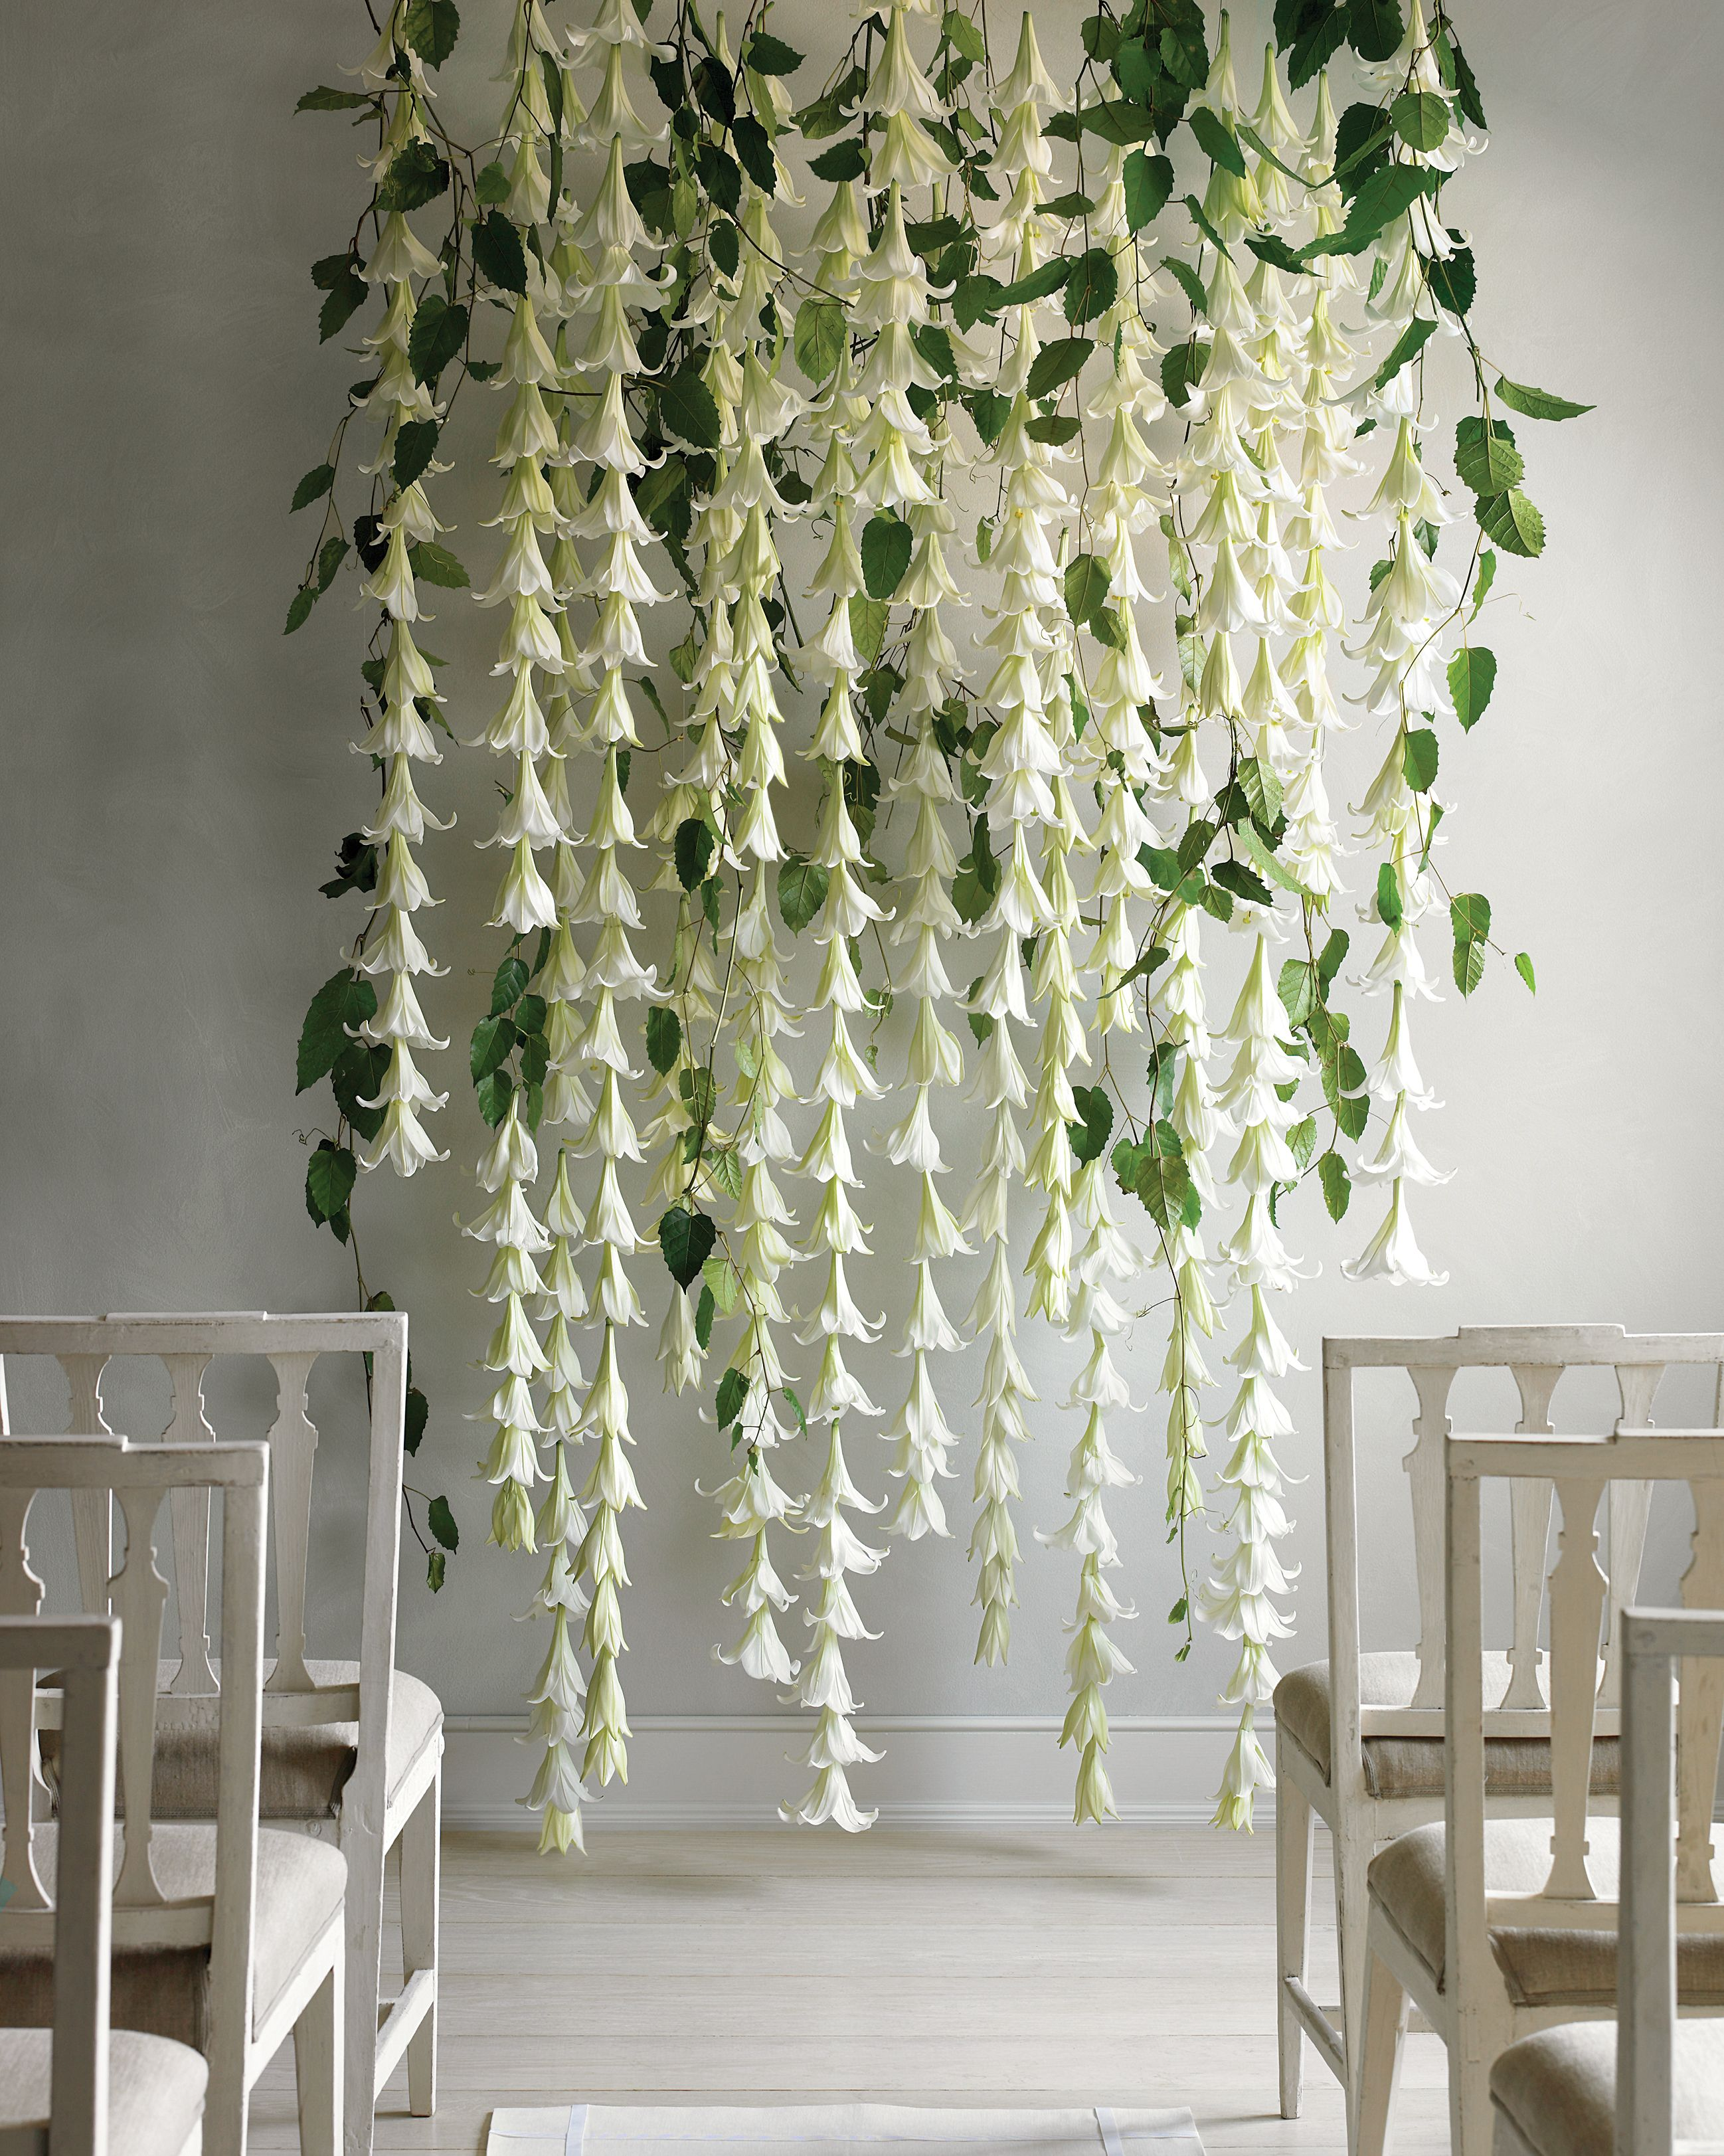 5 spectacular flower walls to inspire your own wedding